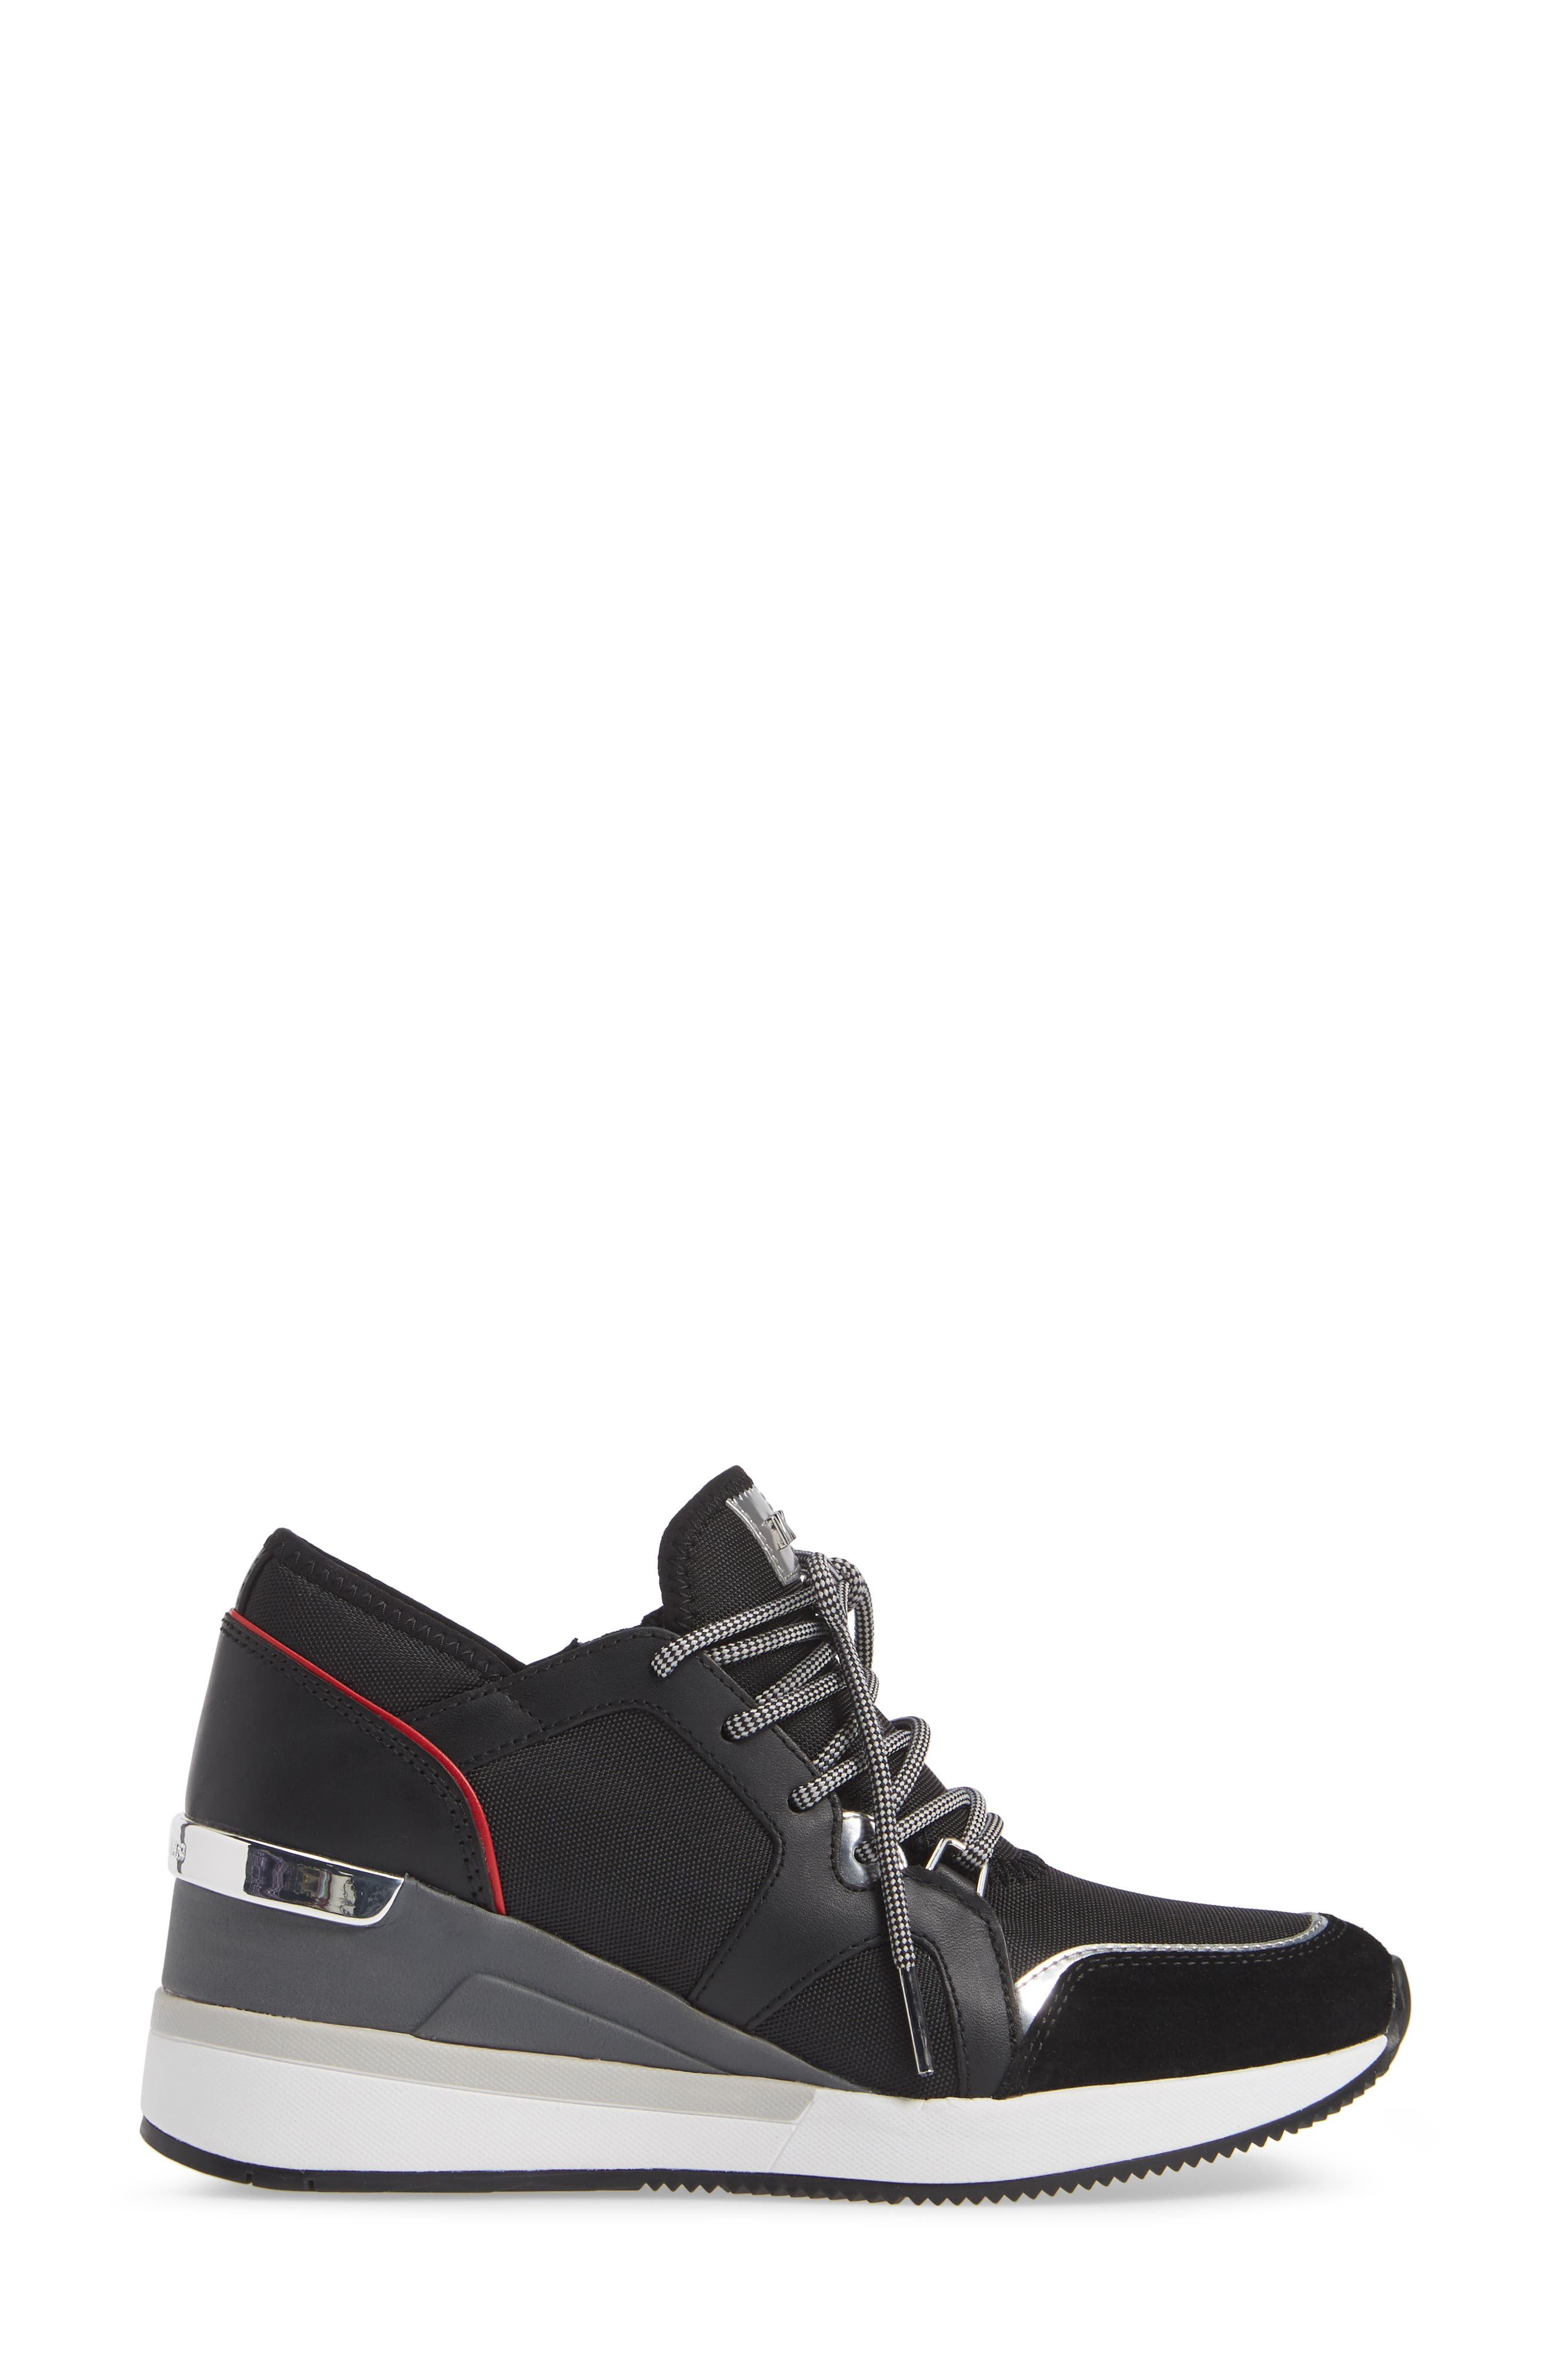 Scout Trainer Wedge Sneaker,                             Alternate thumbnail 3, color,                             001